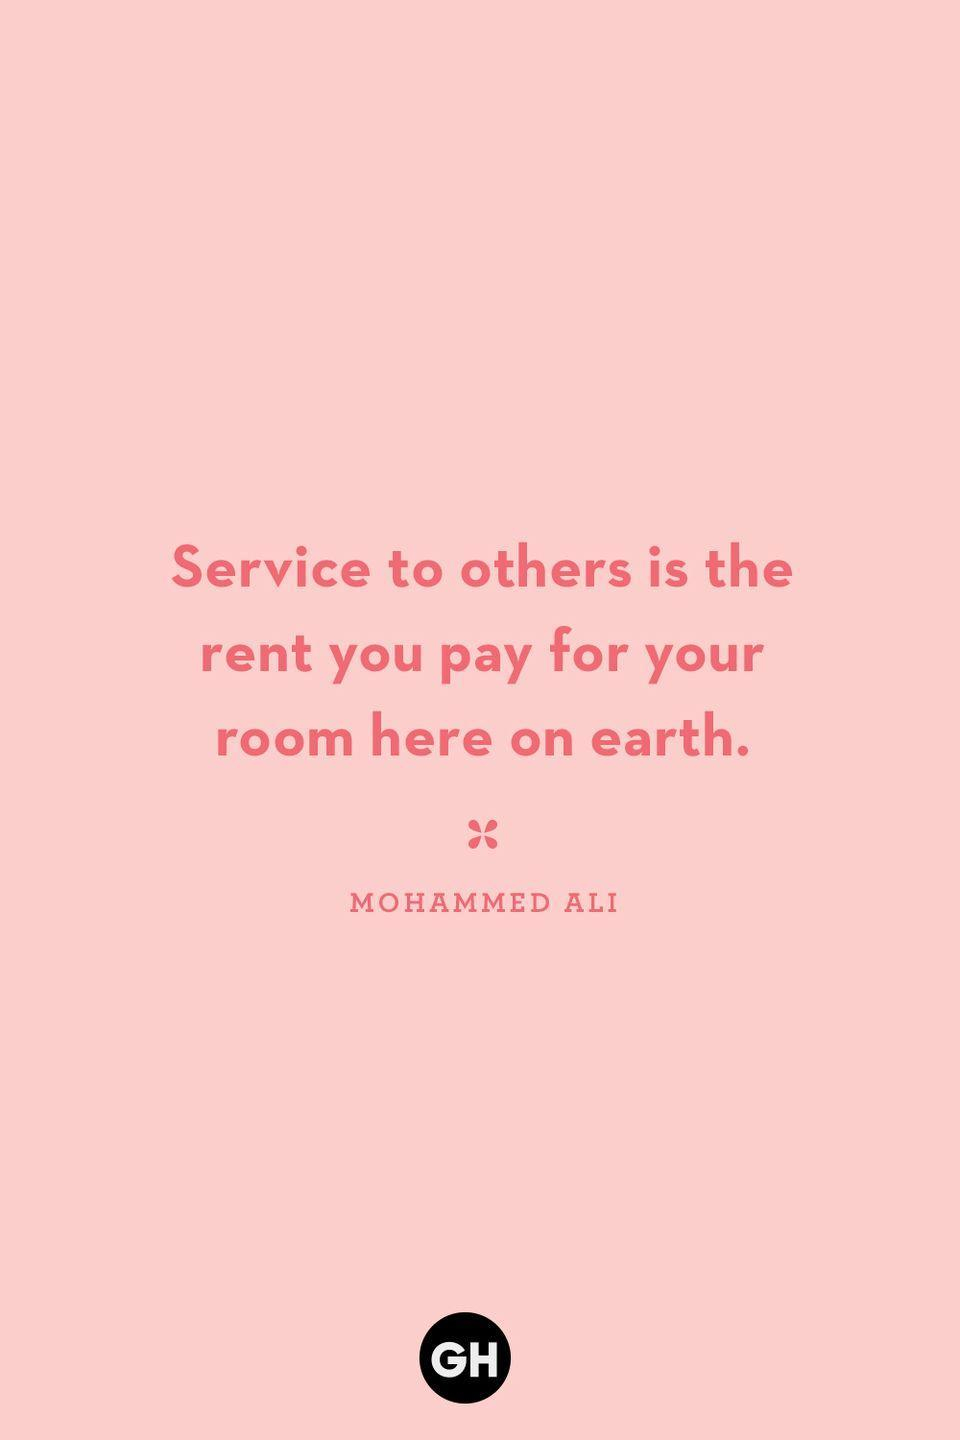 <p>Service to others is the rent you pay for your room here on earth.</p>